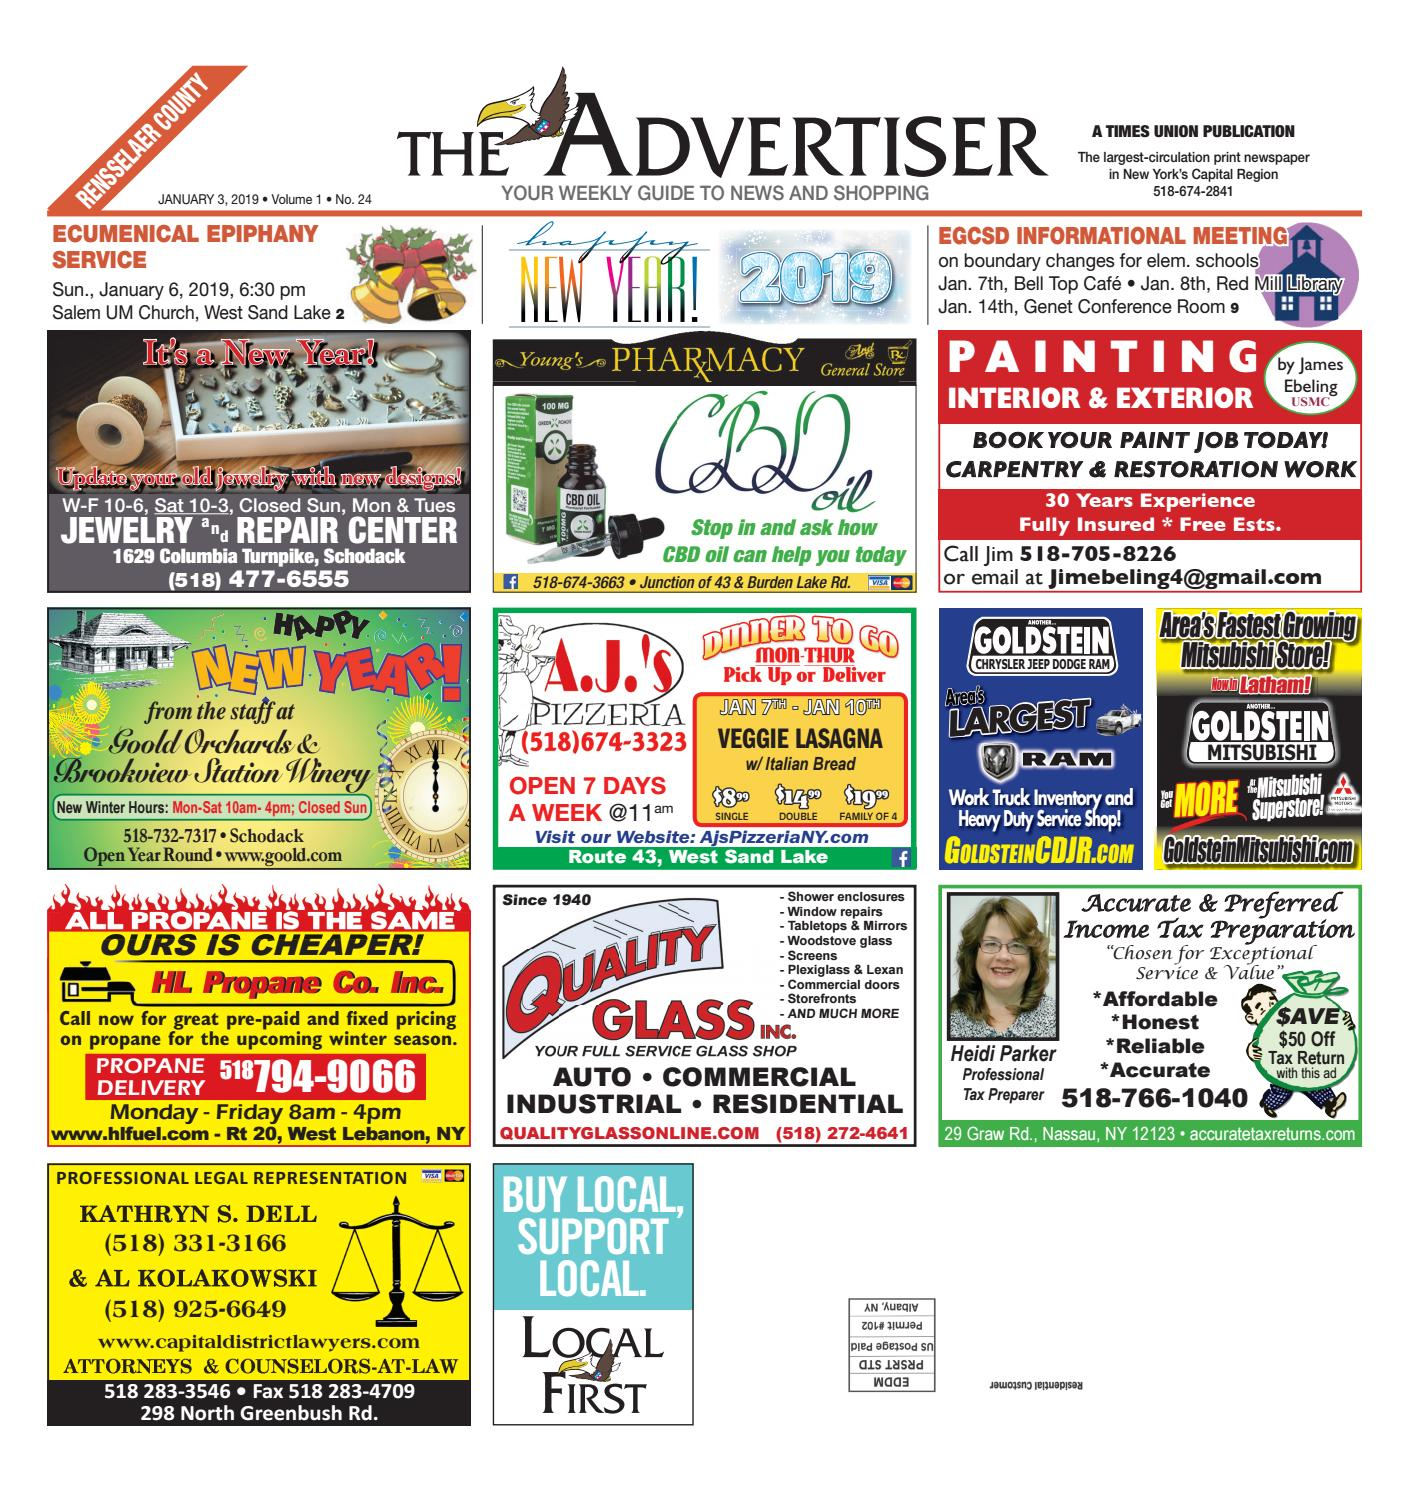 Local First The Advertiser 010319